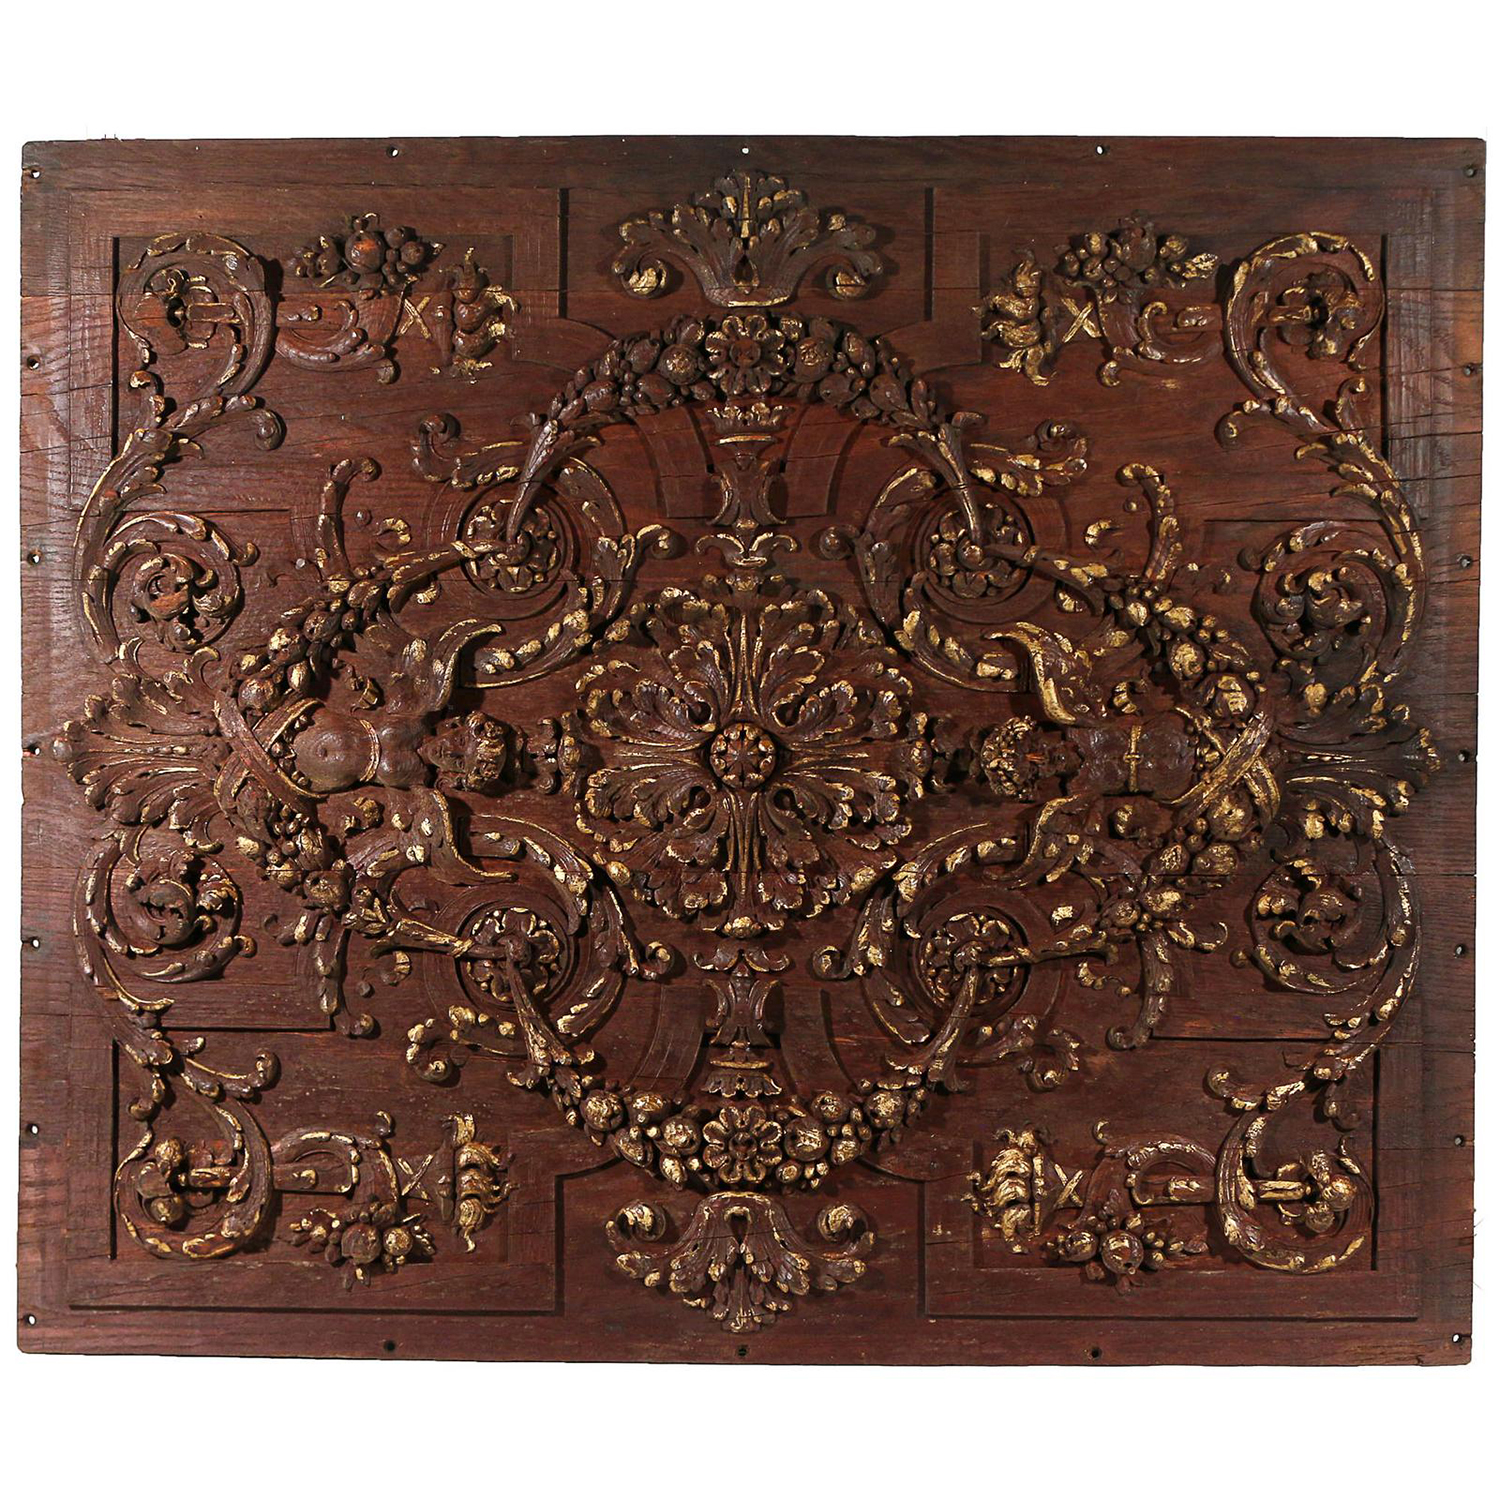 18th – 19th Century Italian Walnut Rococo Carved Ceiling Panel